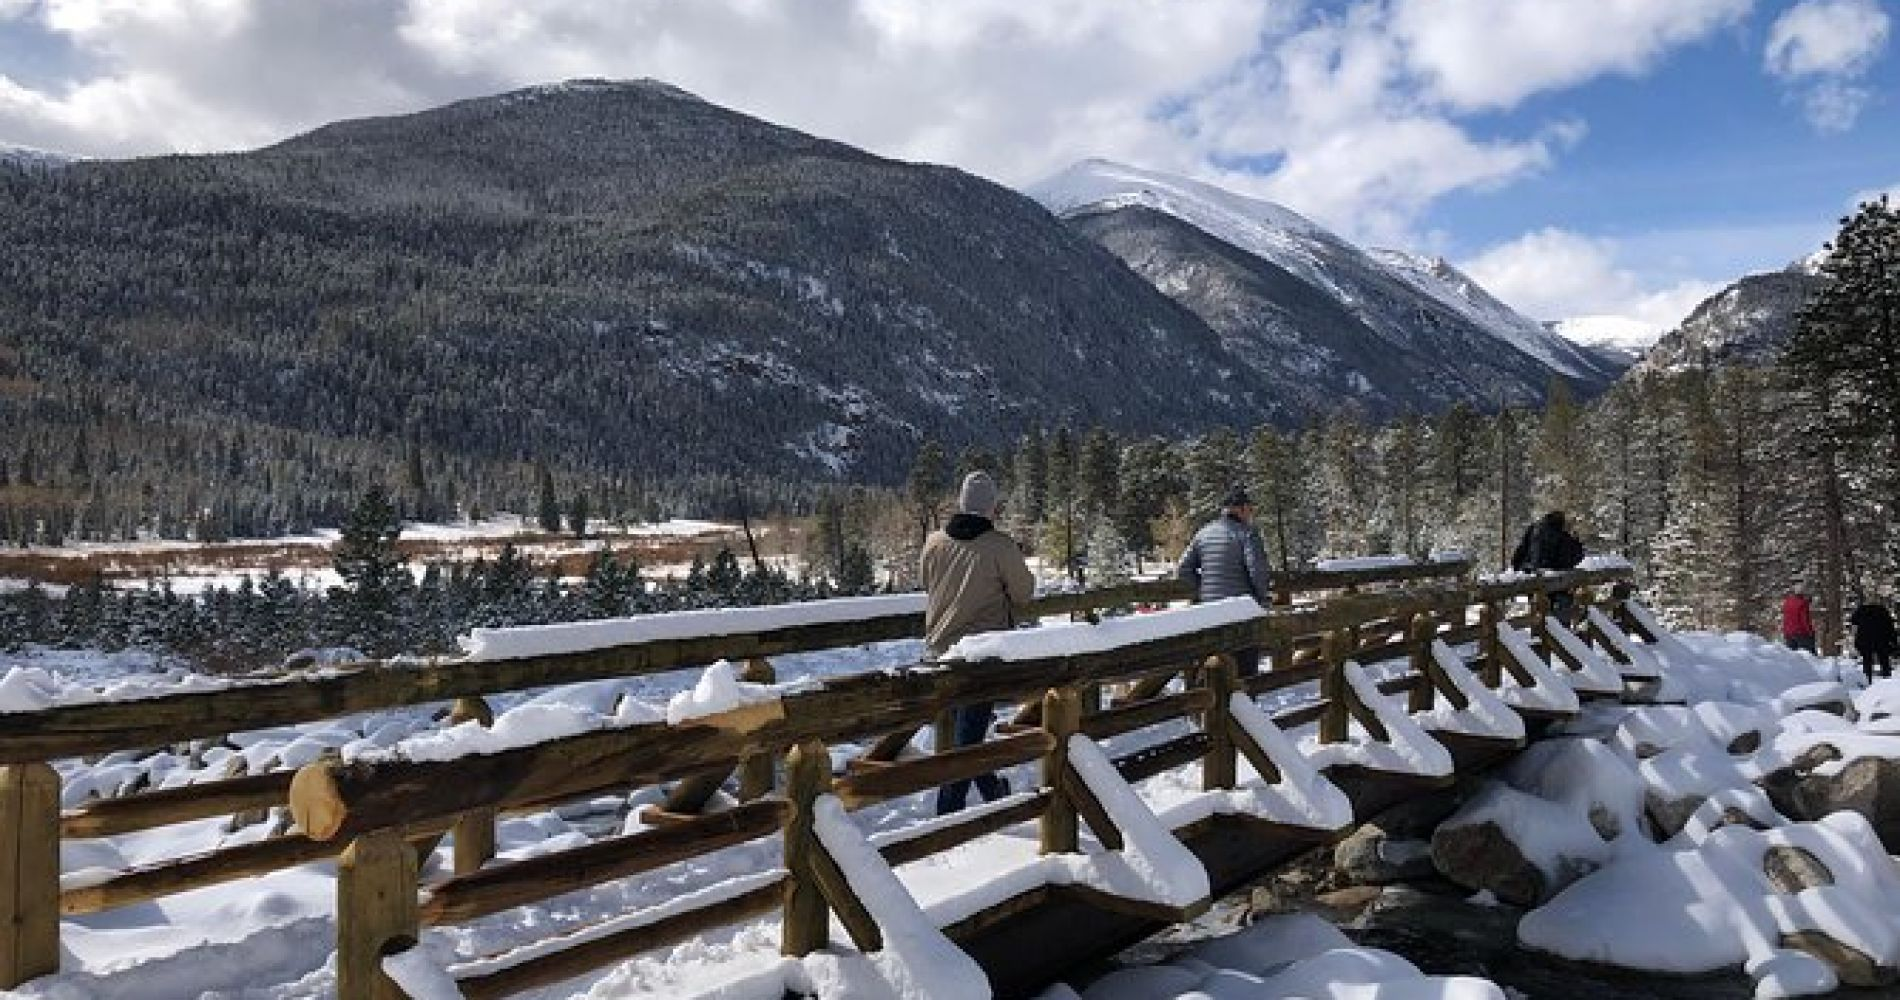 Hiking Adventure in Rocky Mountain National Park from Denver